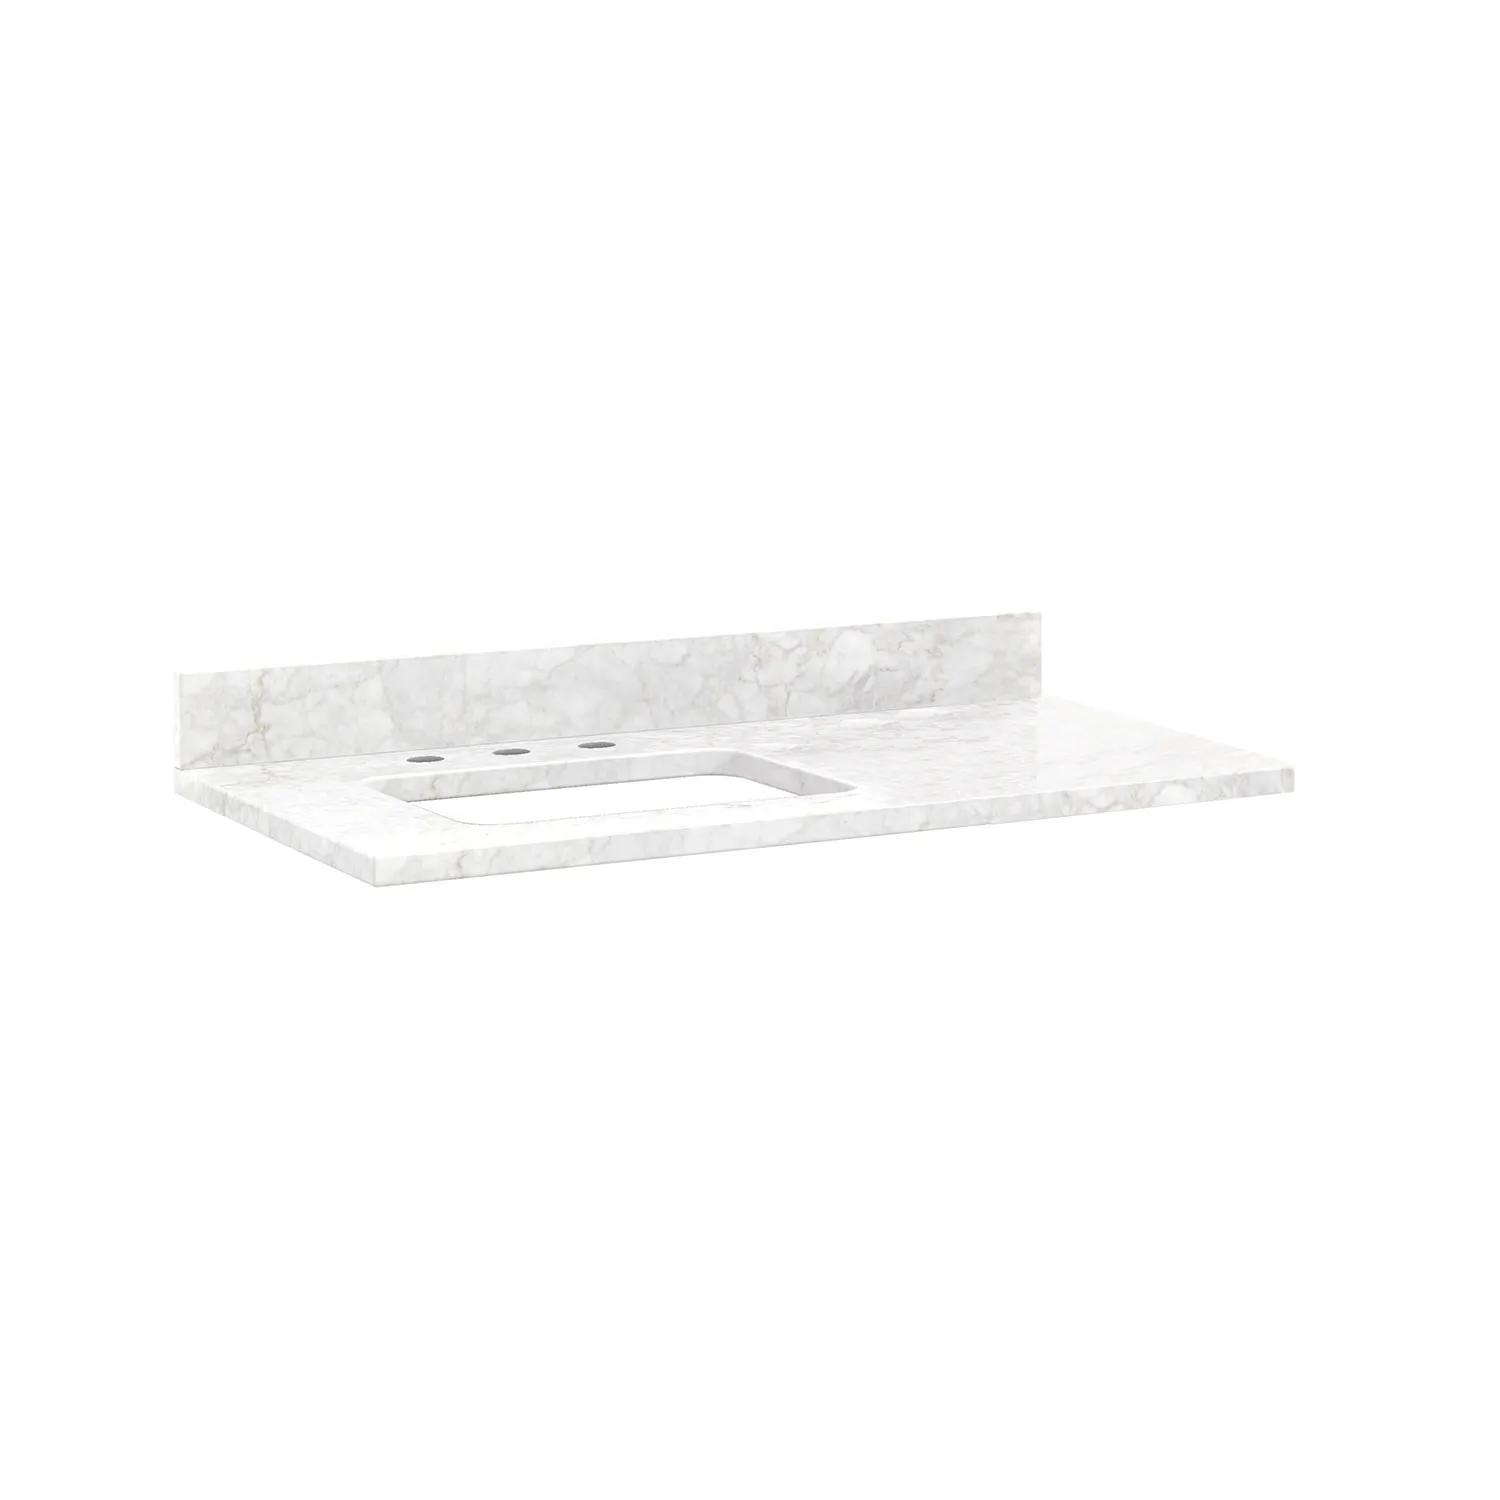 43 X 22 3cm Marble Vanity Top For Left Offset Rectangular Undermount Sink White Carrara 8 Faucet Holes W Sink Bathroom